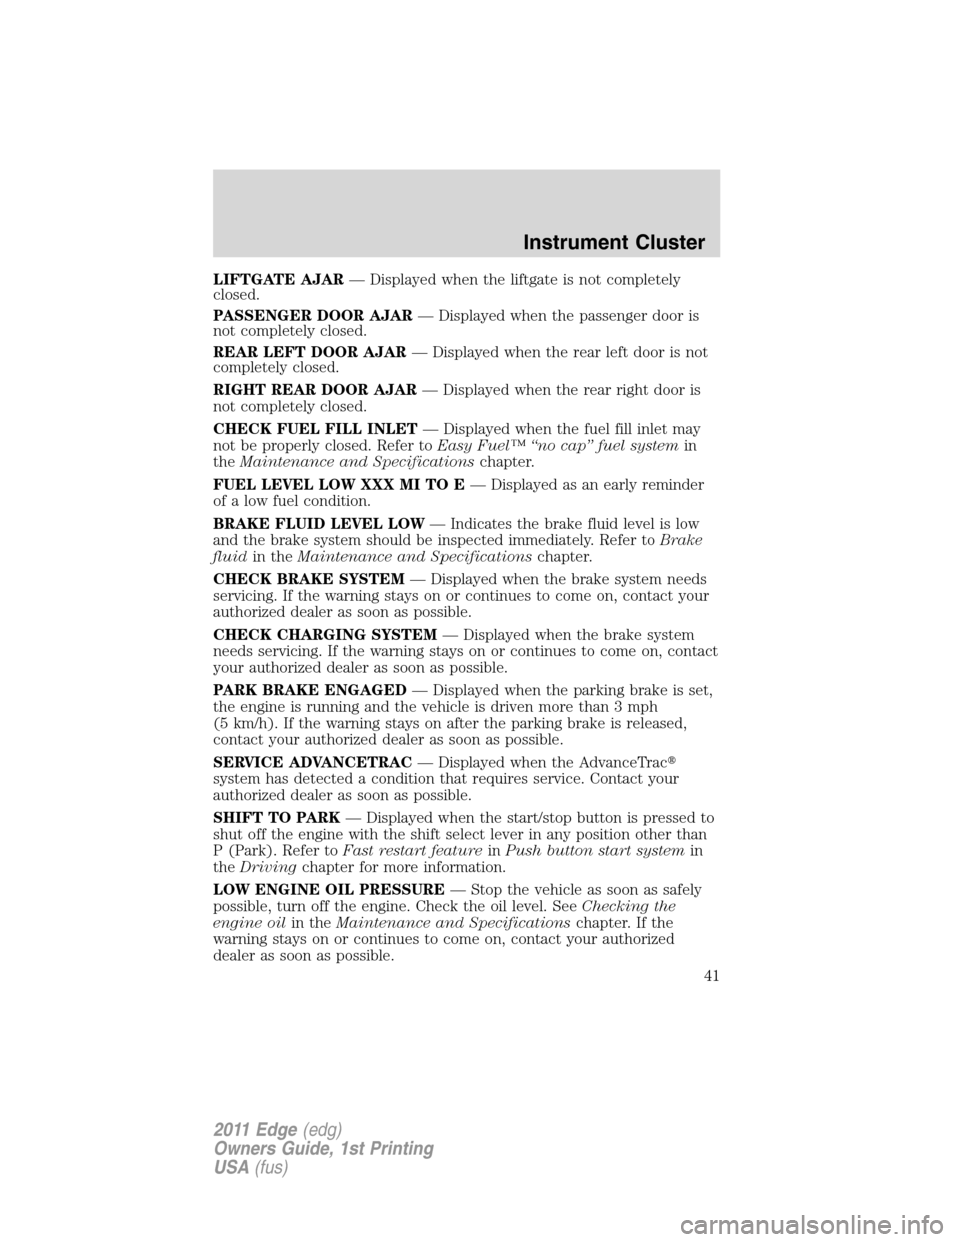 FORD EDGE 2011 1.G Owners Manual, Page 41